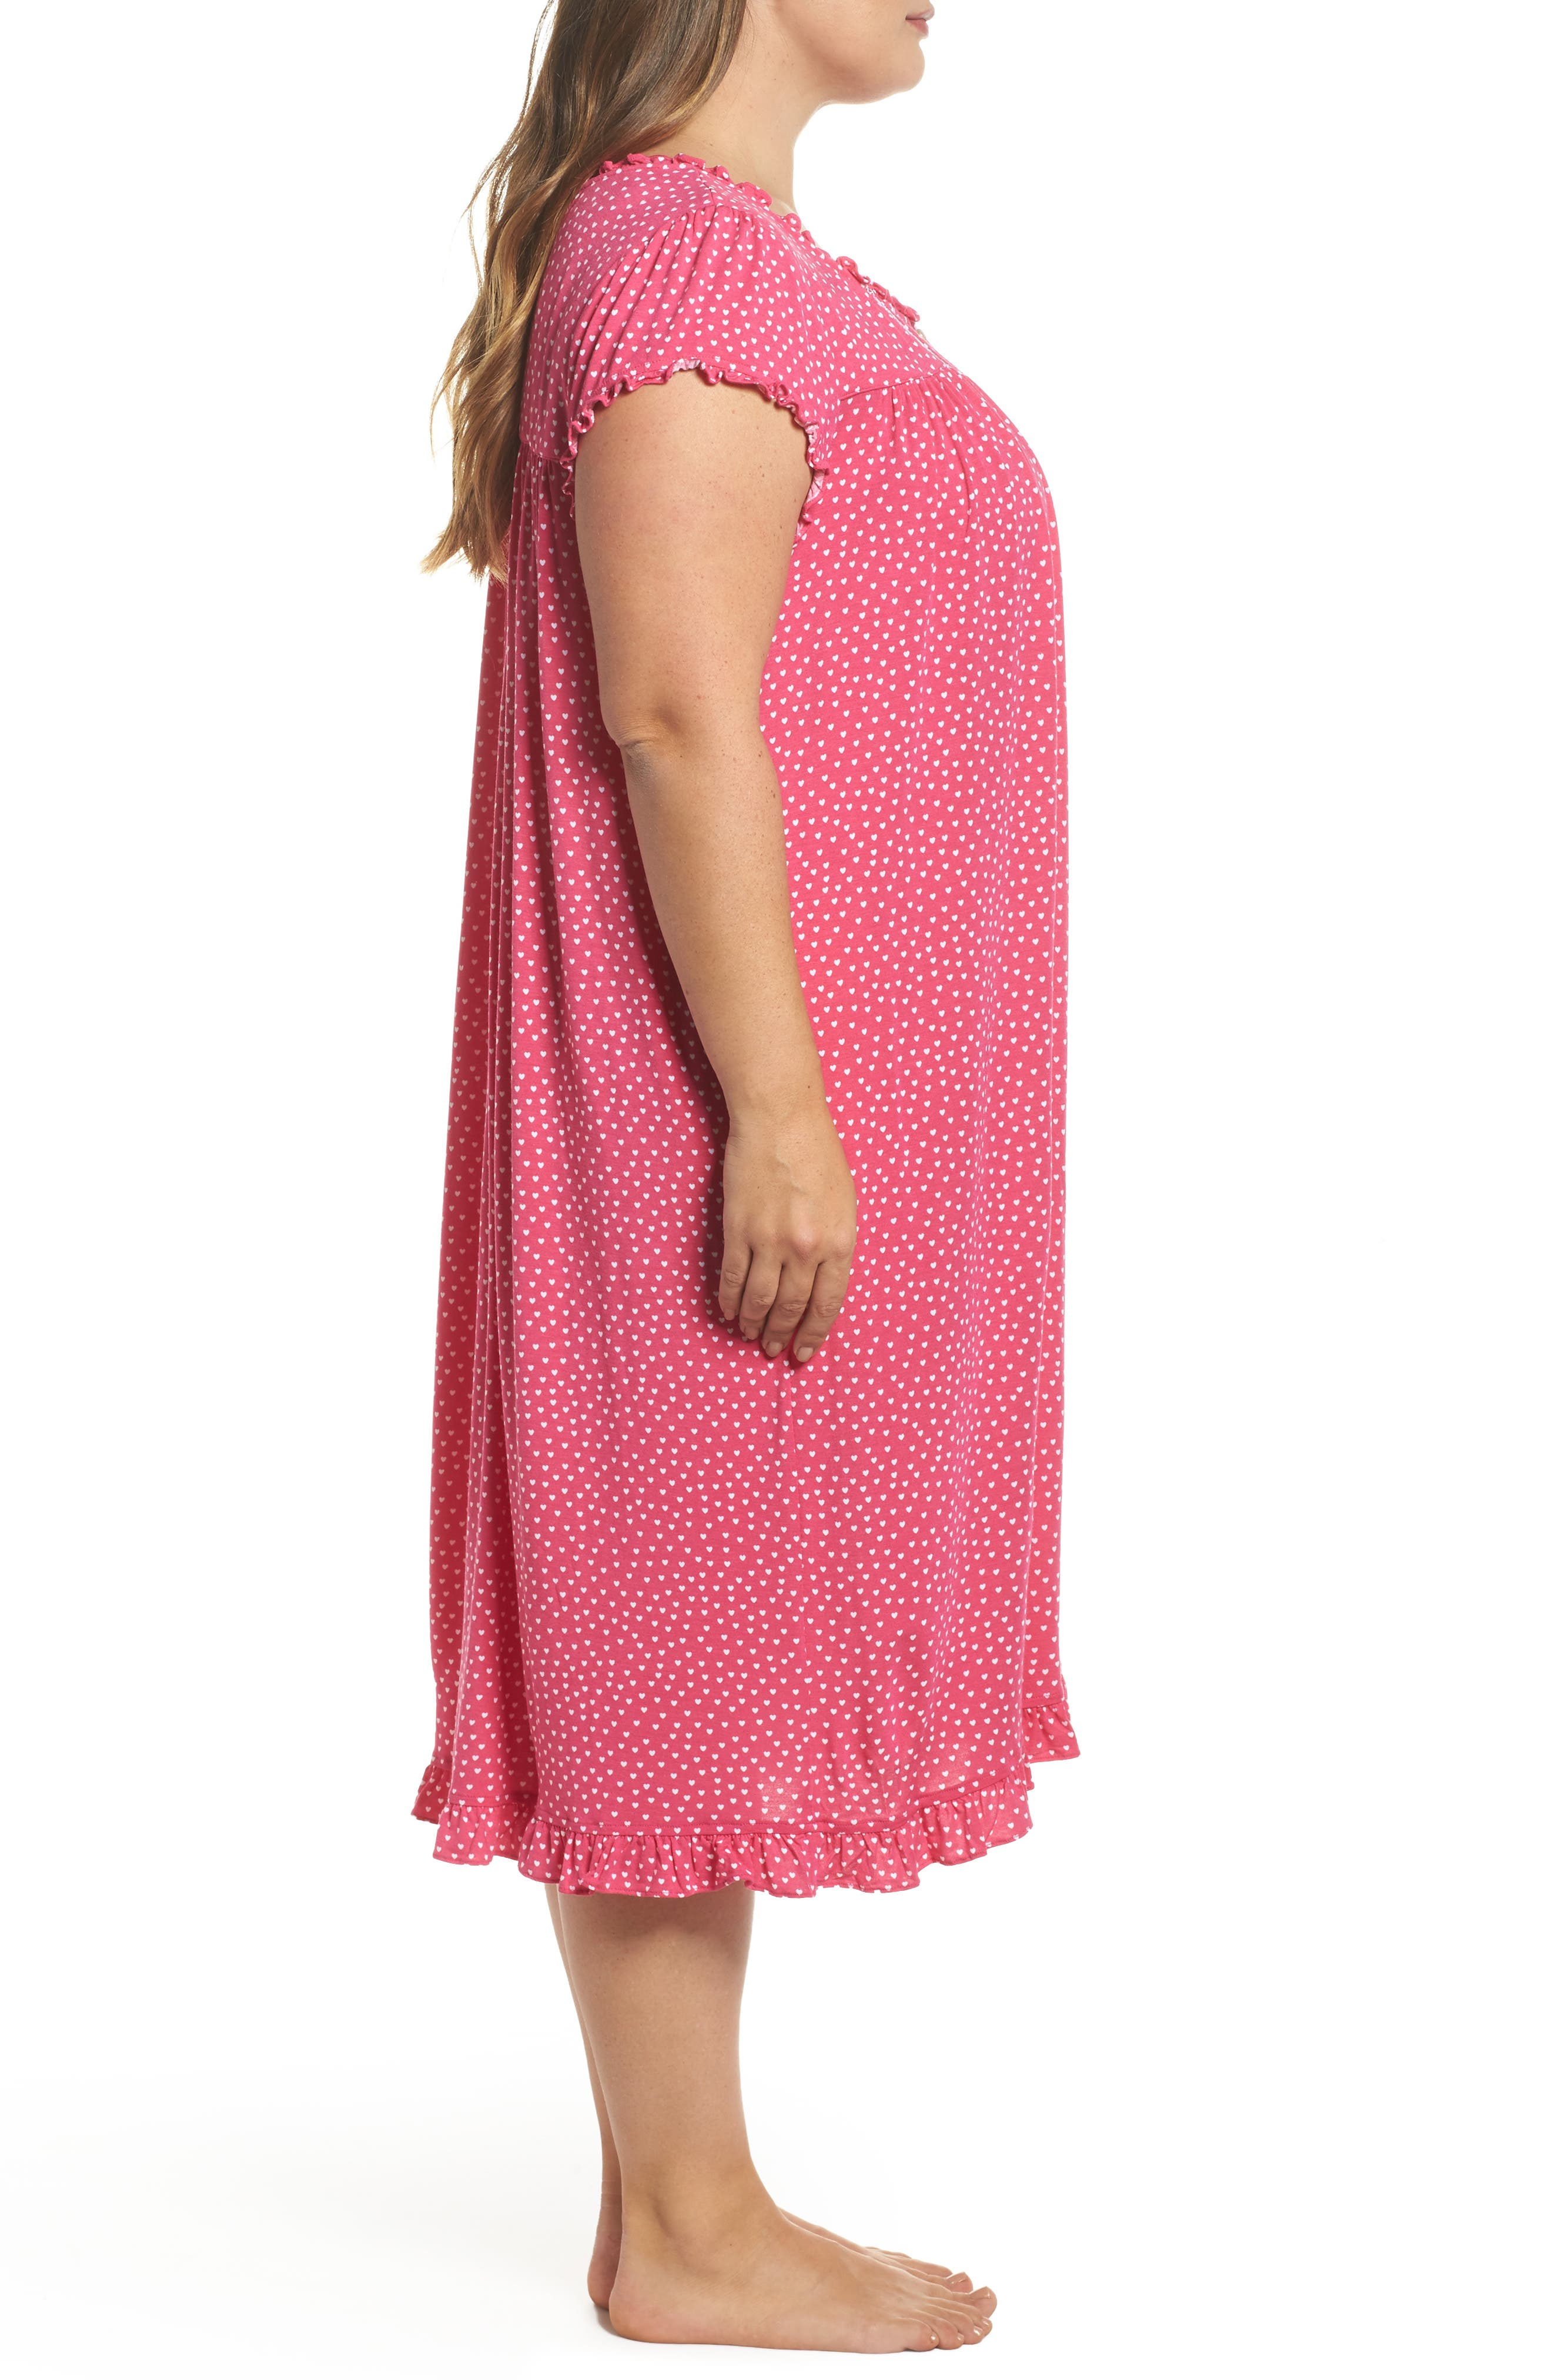 Modal Jersey Nightgown,                             Alternate thumbnail 3, color,                             Peony White Hearts